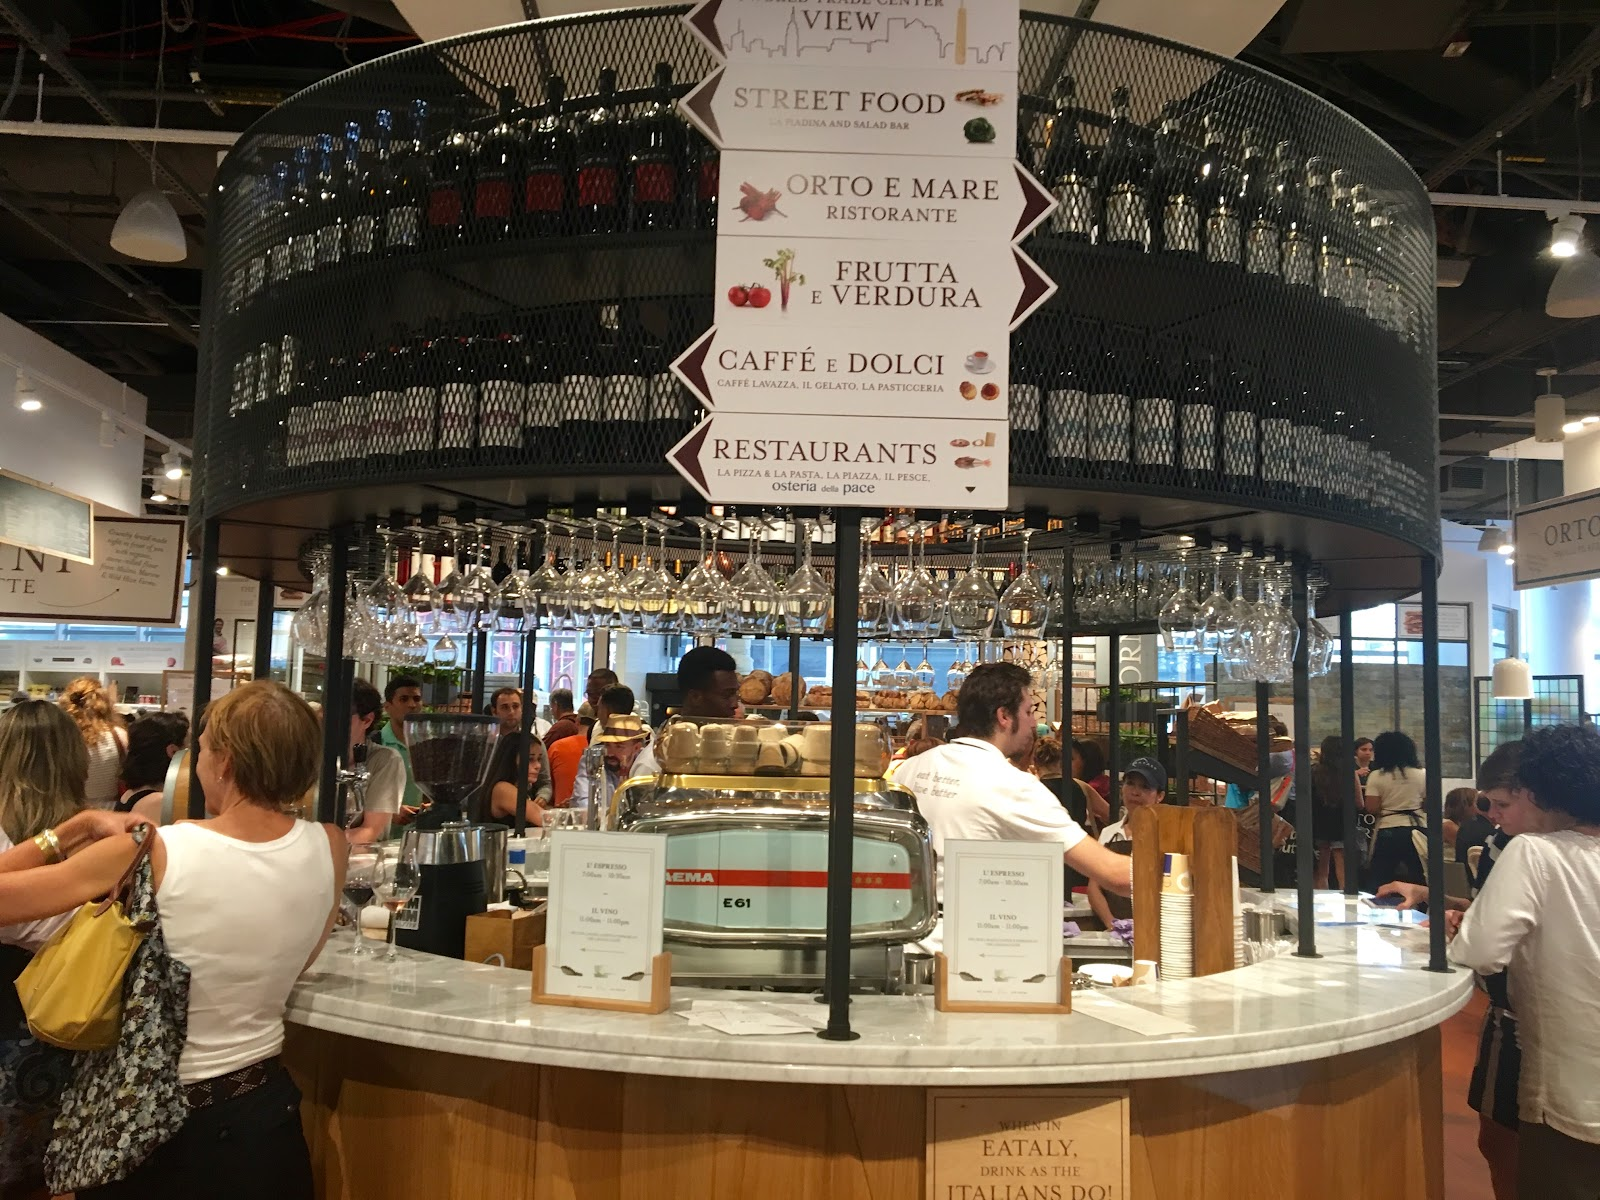 L Espresso Il Vino This Gorgeous Circular Bar Is The Very First Stopping Point When Coming Off Escalator Most People Never Realize It S Okay To